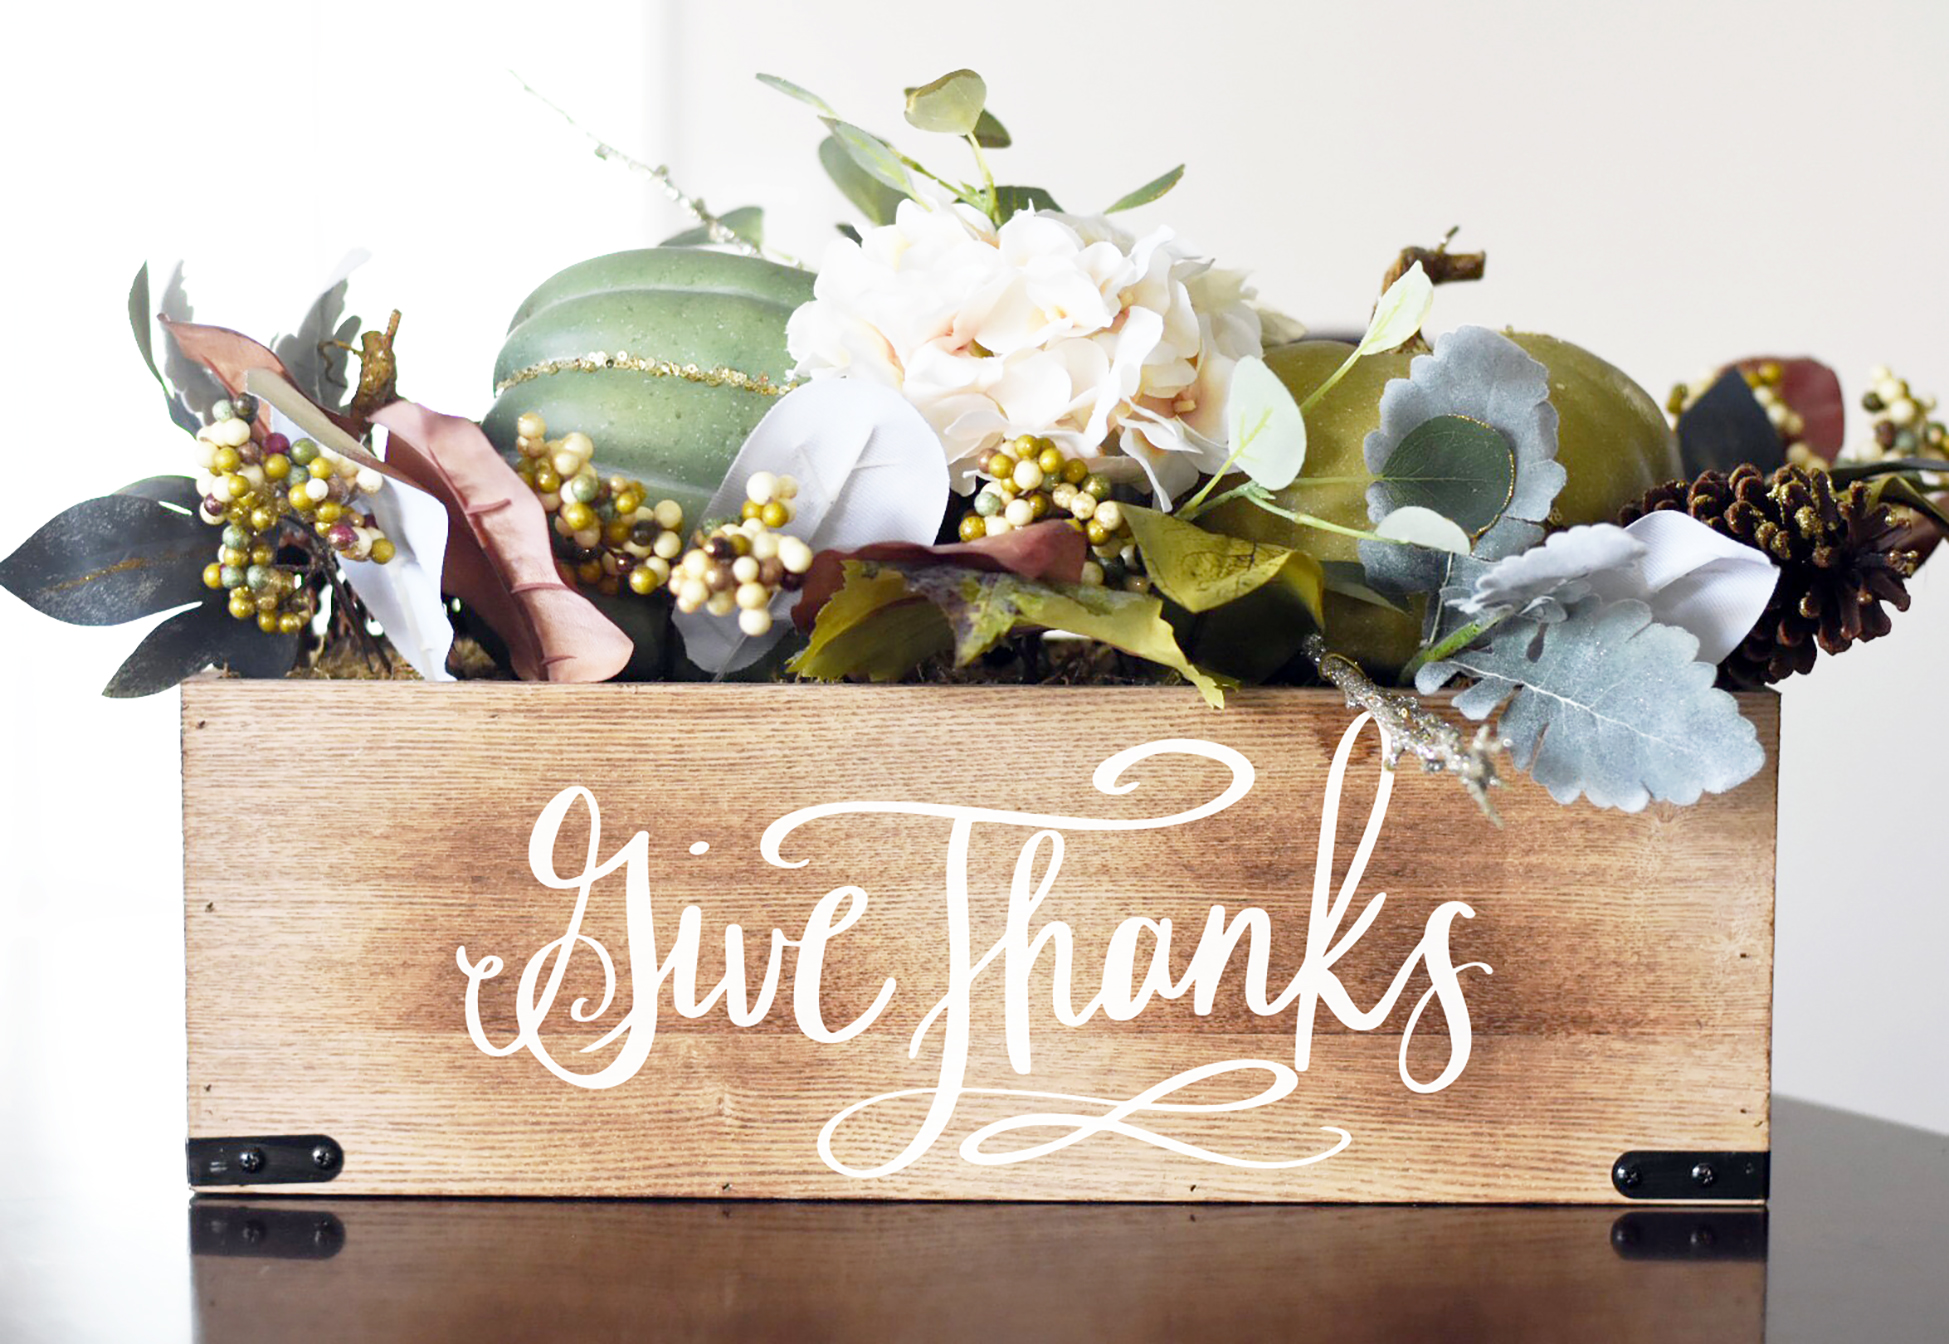 Free Give Thanks Svg Diy Centerpiece Box Pineapple Paper Co